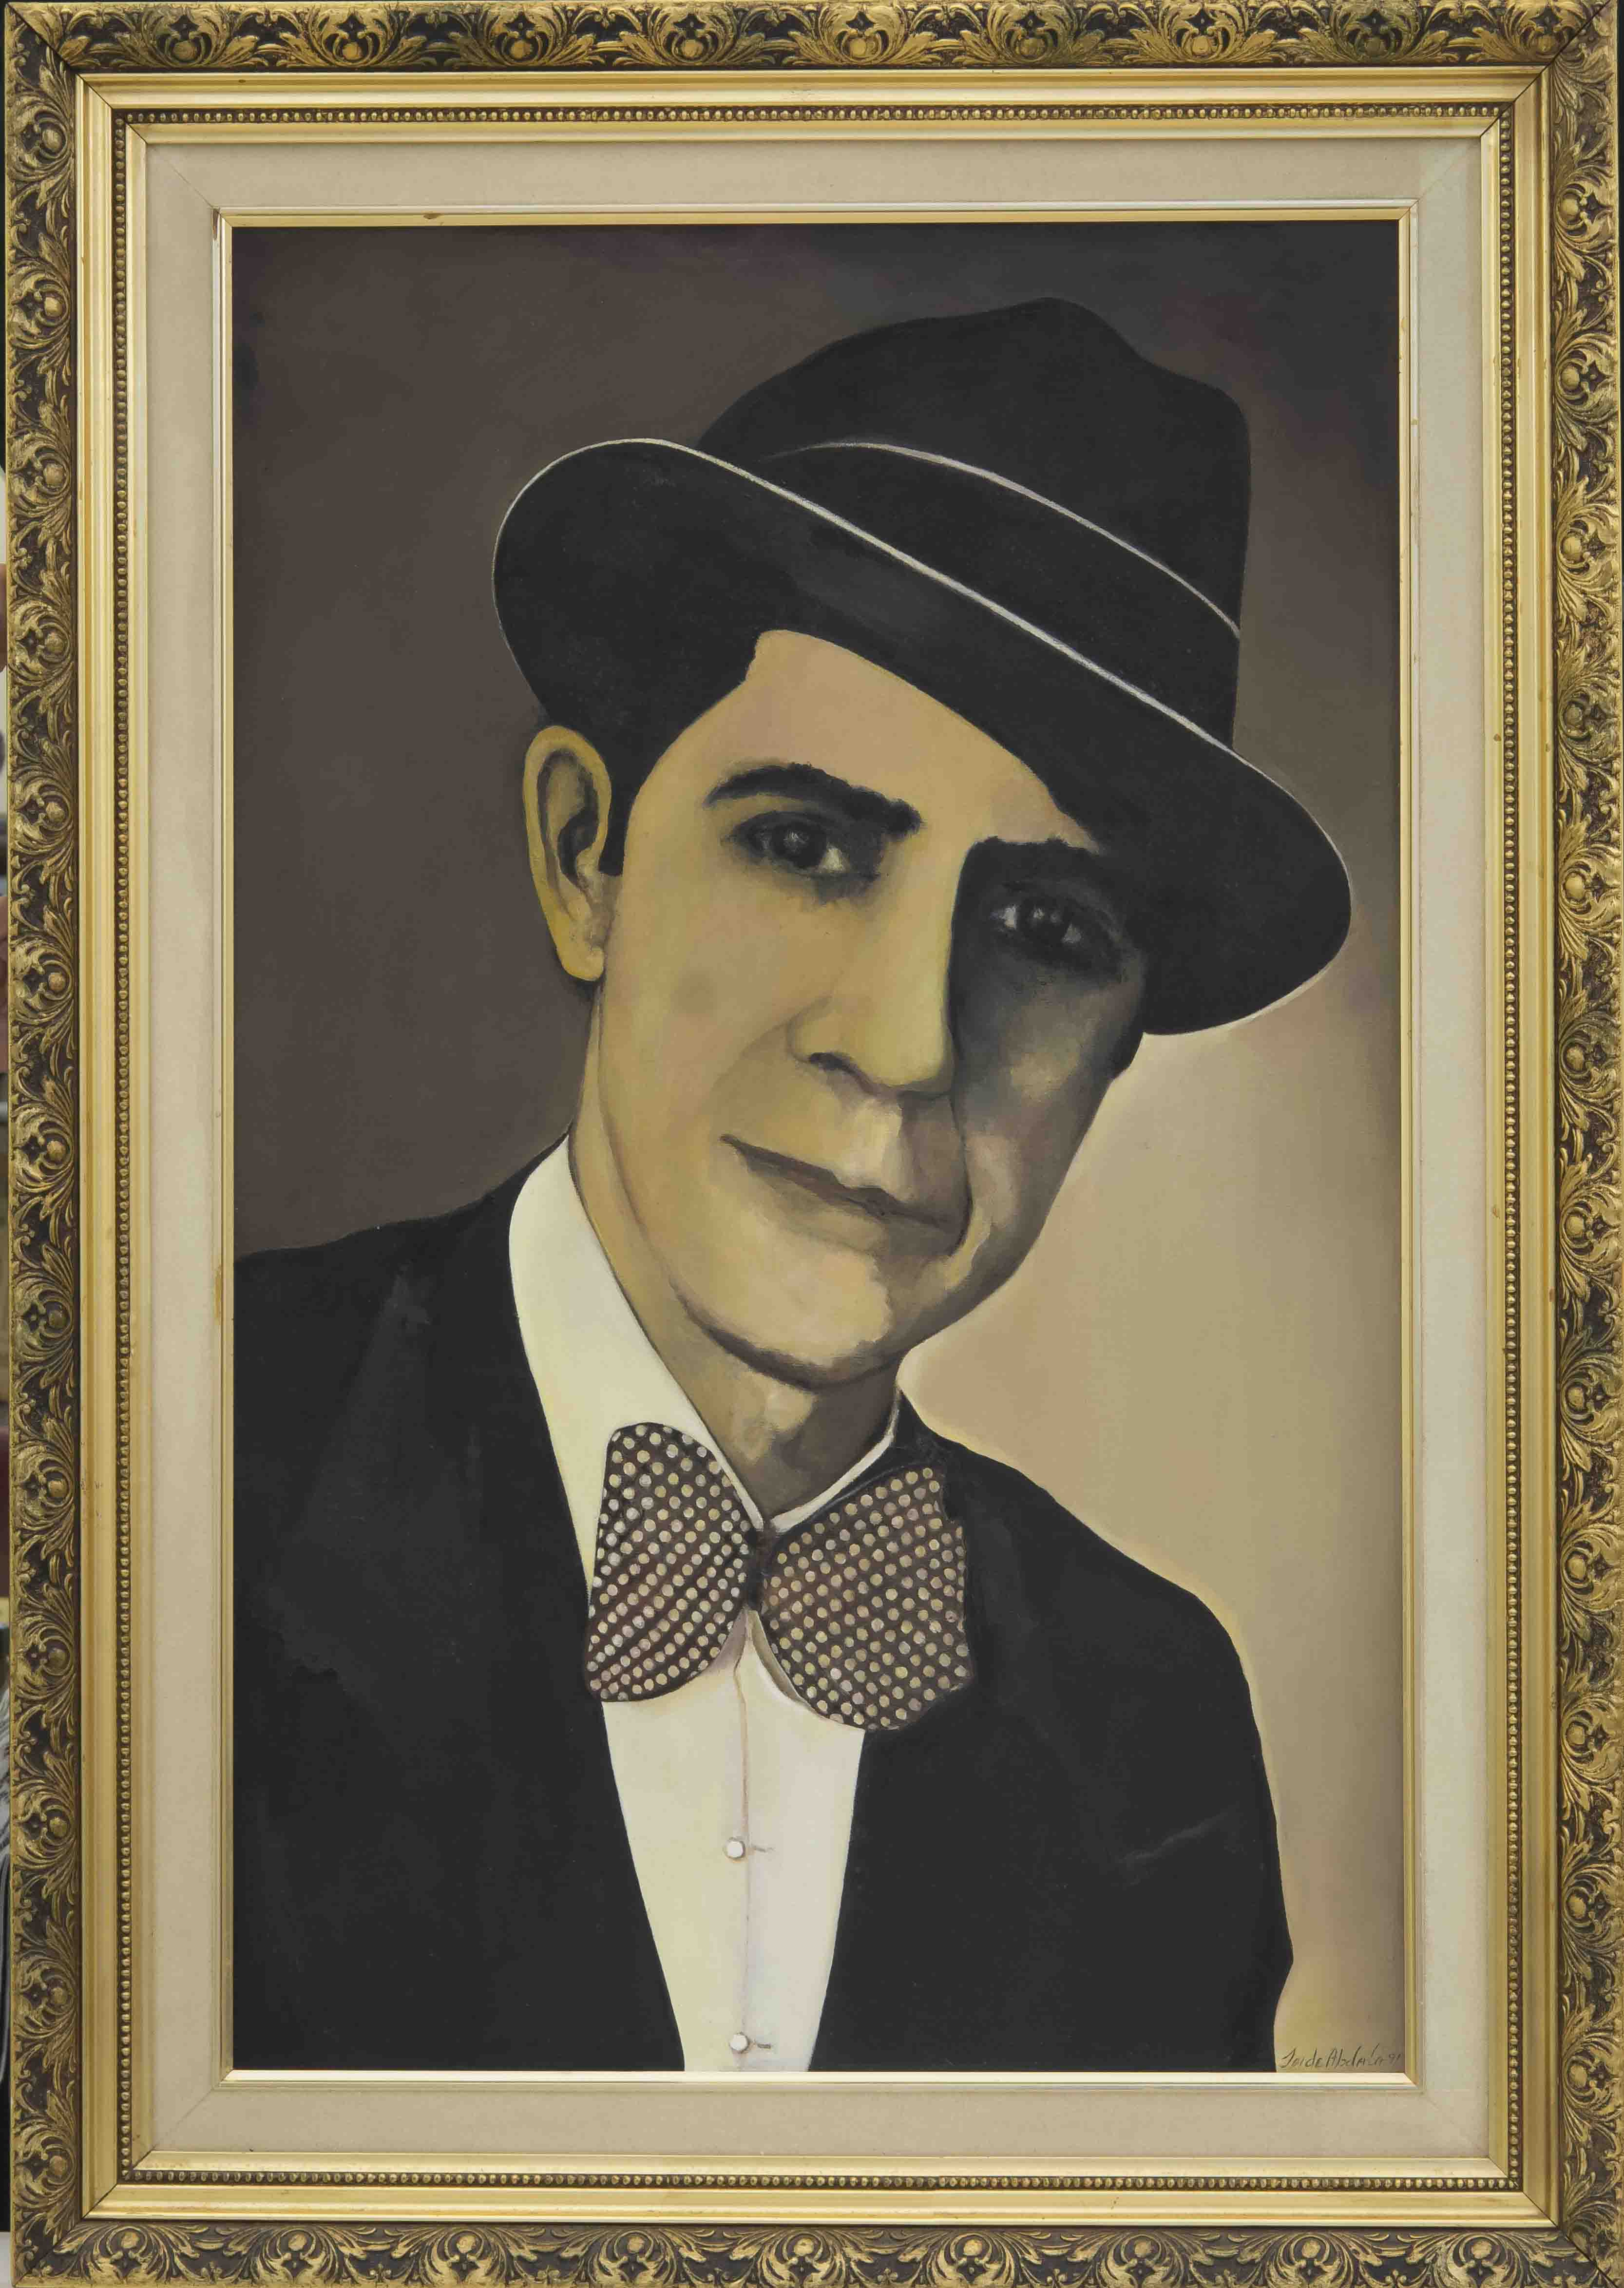 N°11 GARDEL 1933 ( Based on an image from that year ) 0,81cm x 1,14cm